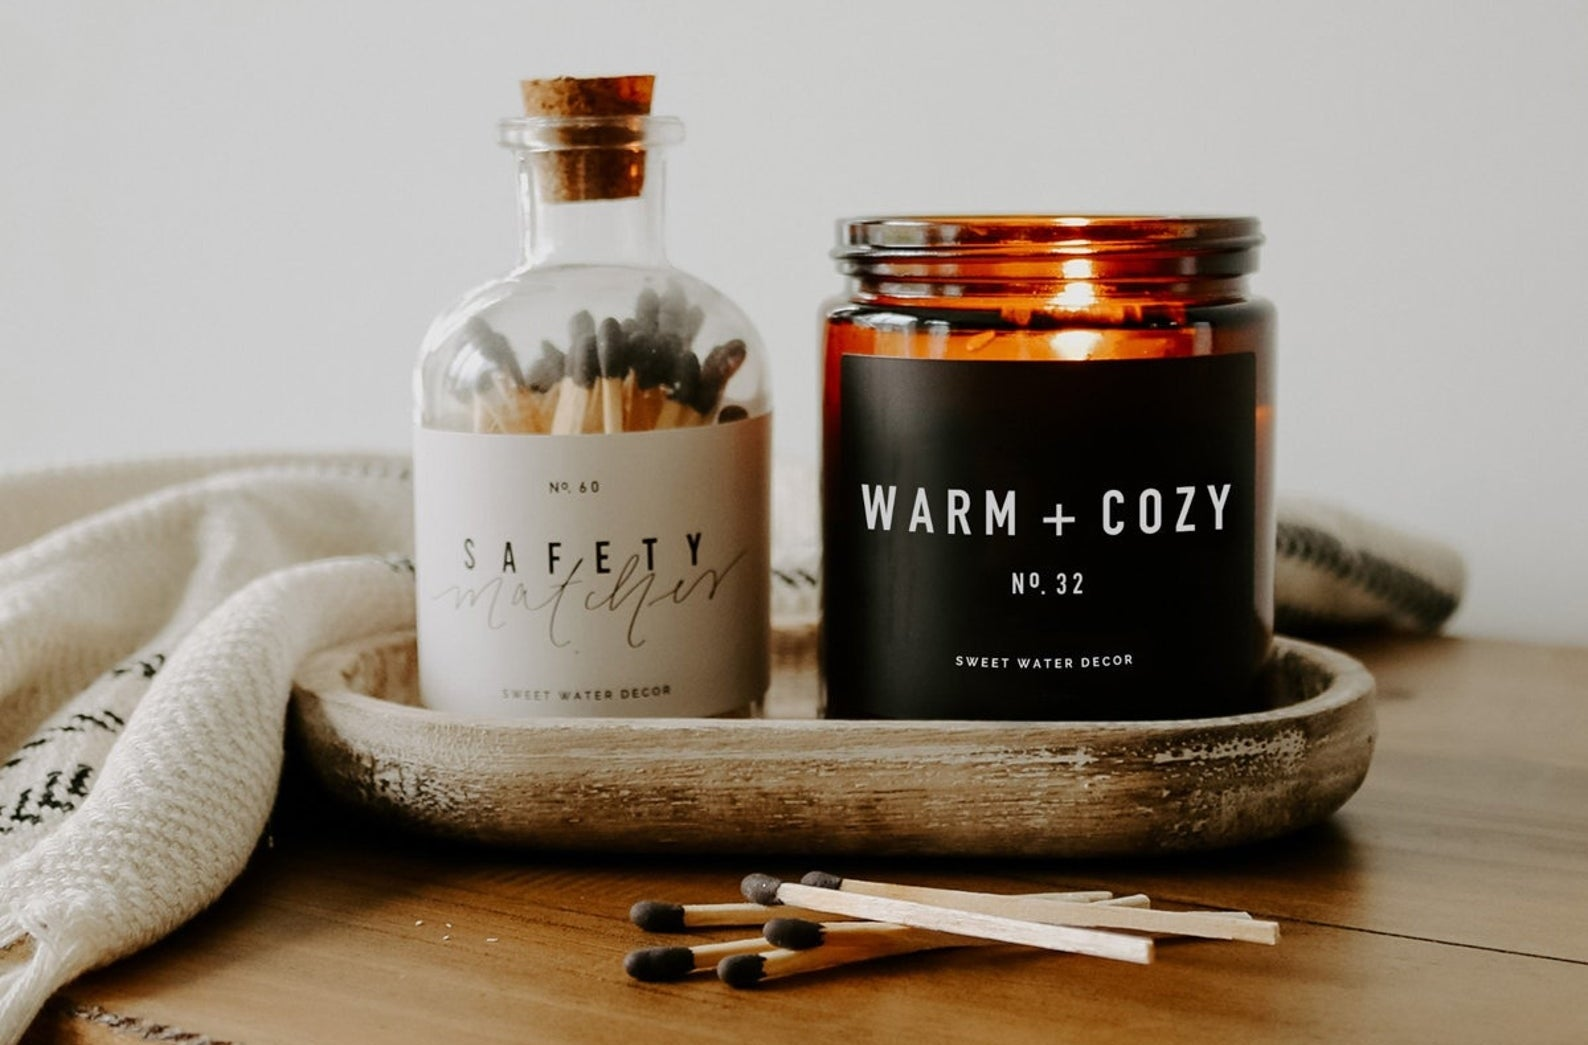 the lit warm and cozy candle